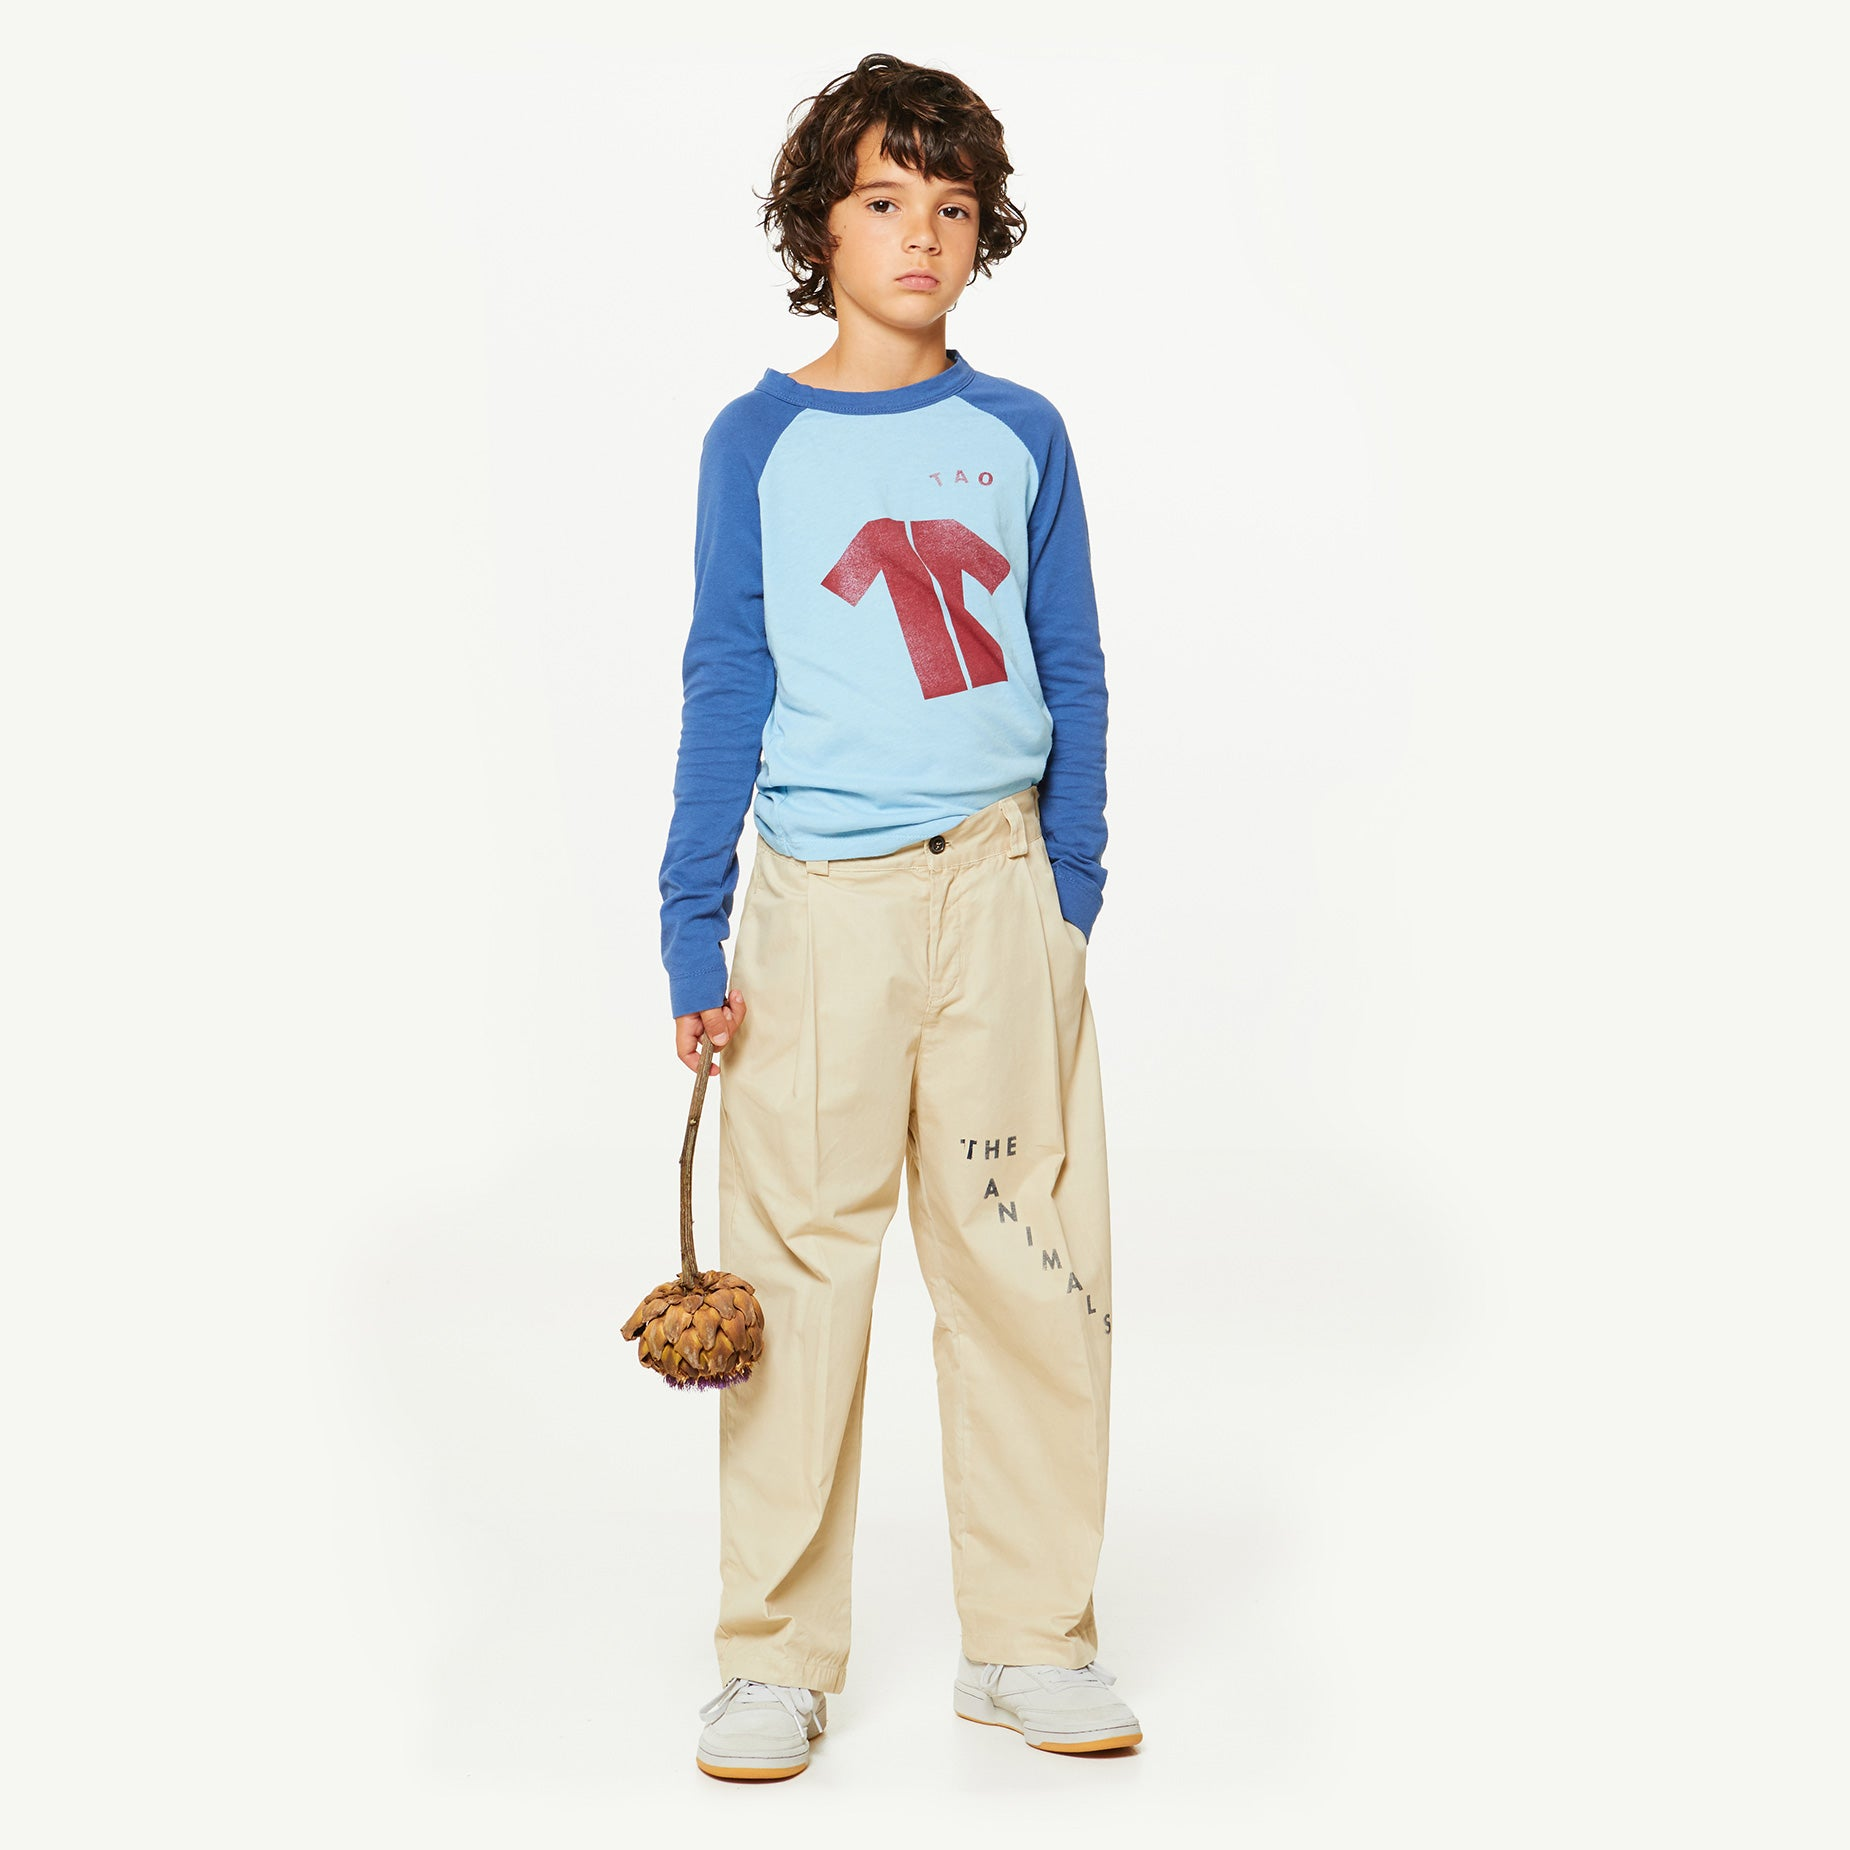 Cricket Kid's T-Shirt